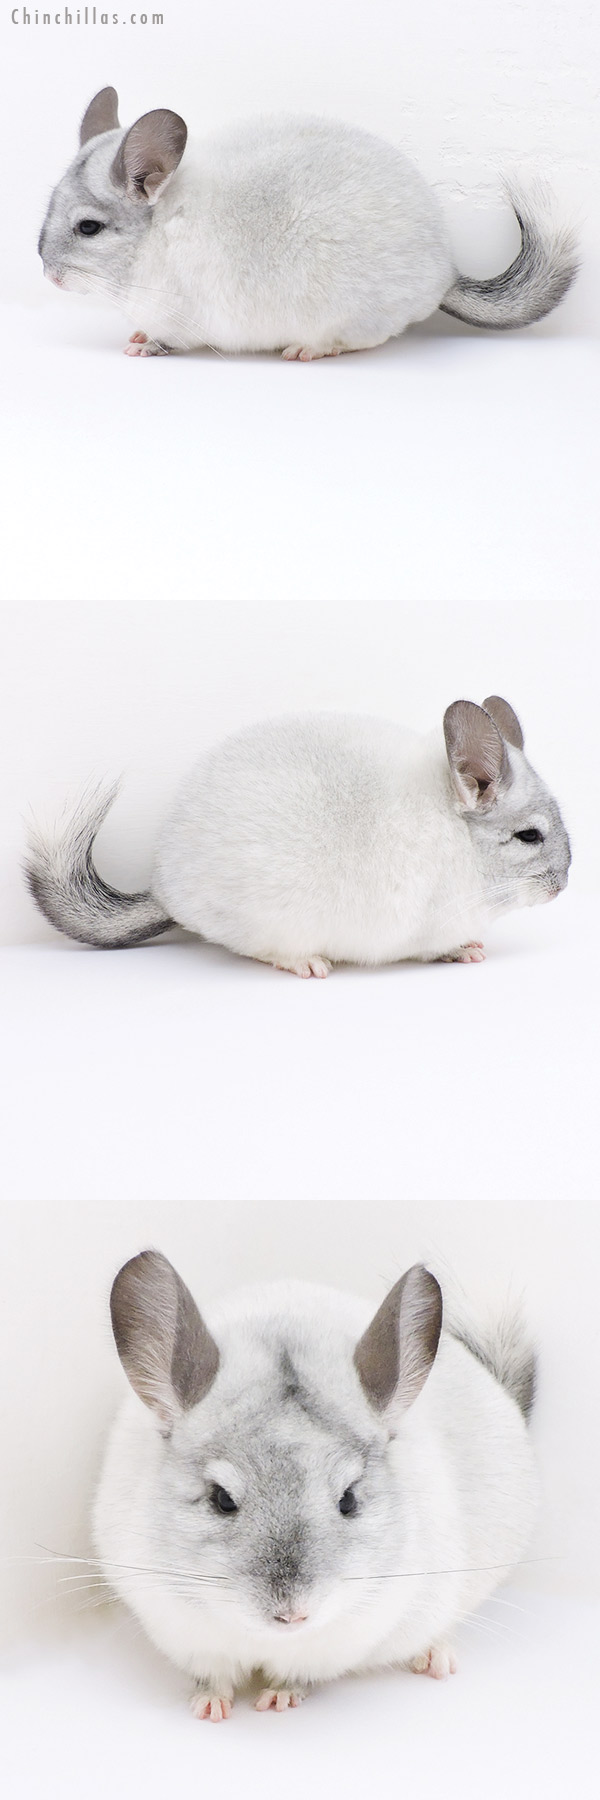 19022 Show Quality White Mosaic Female Chinchilla